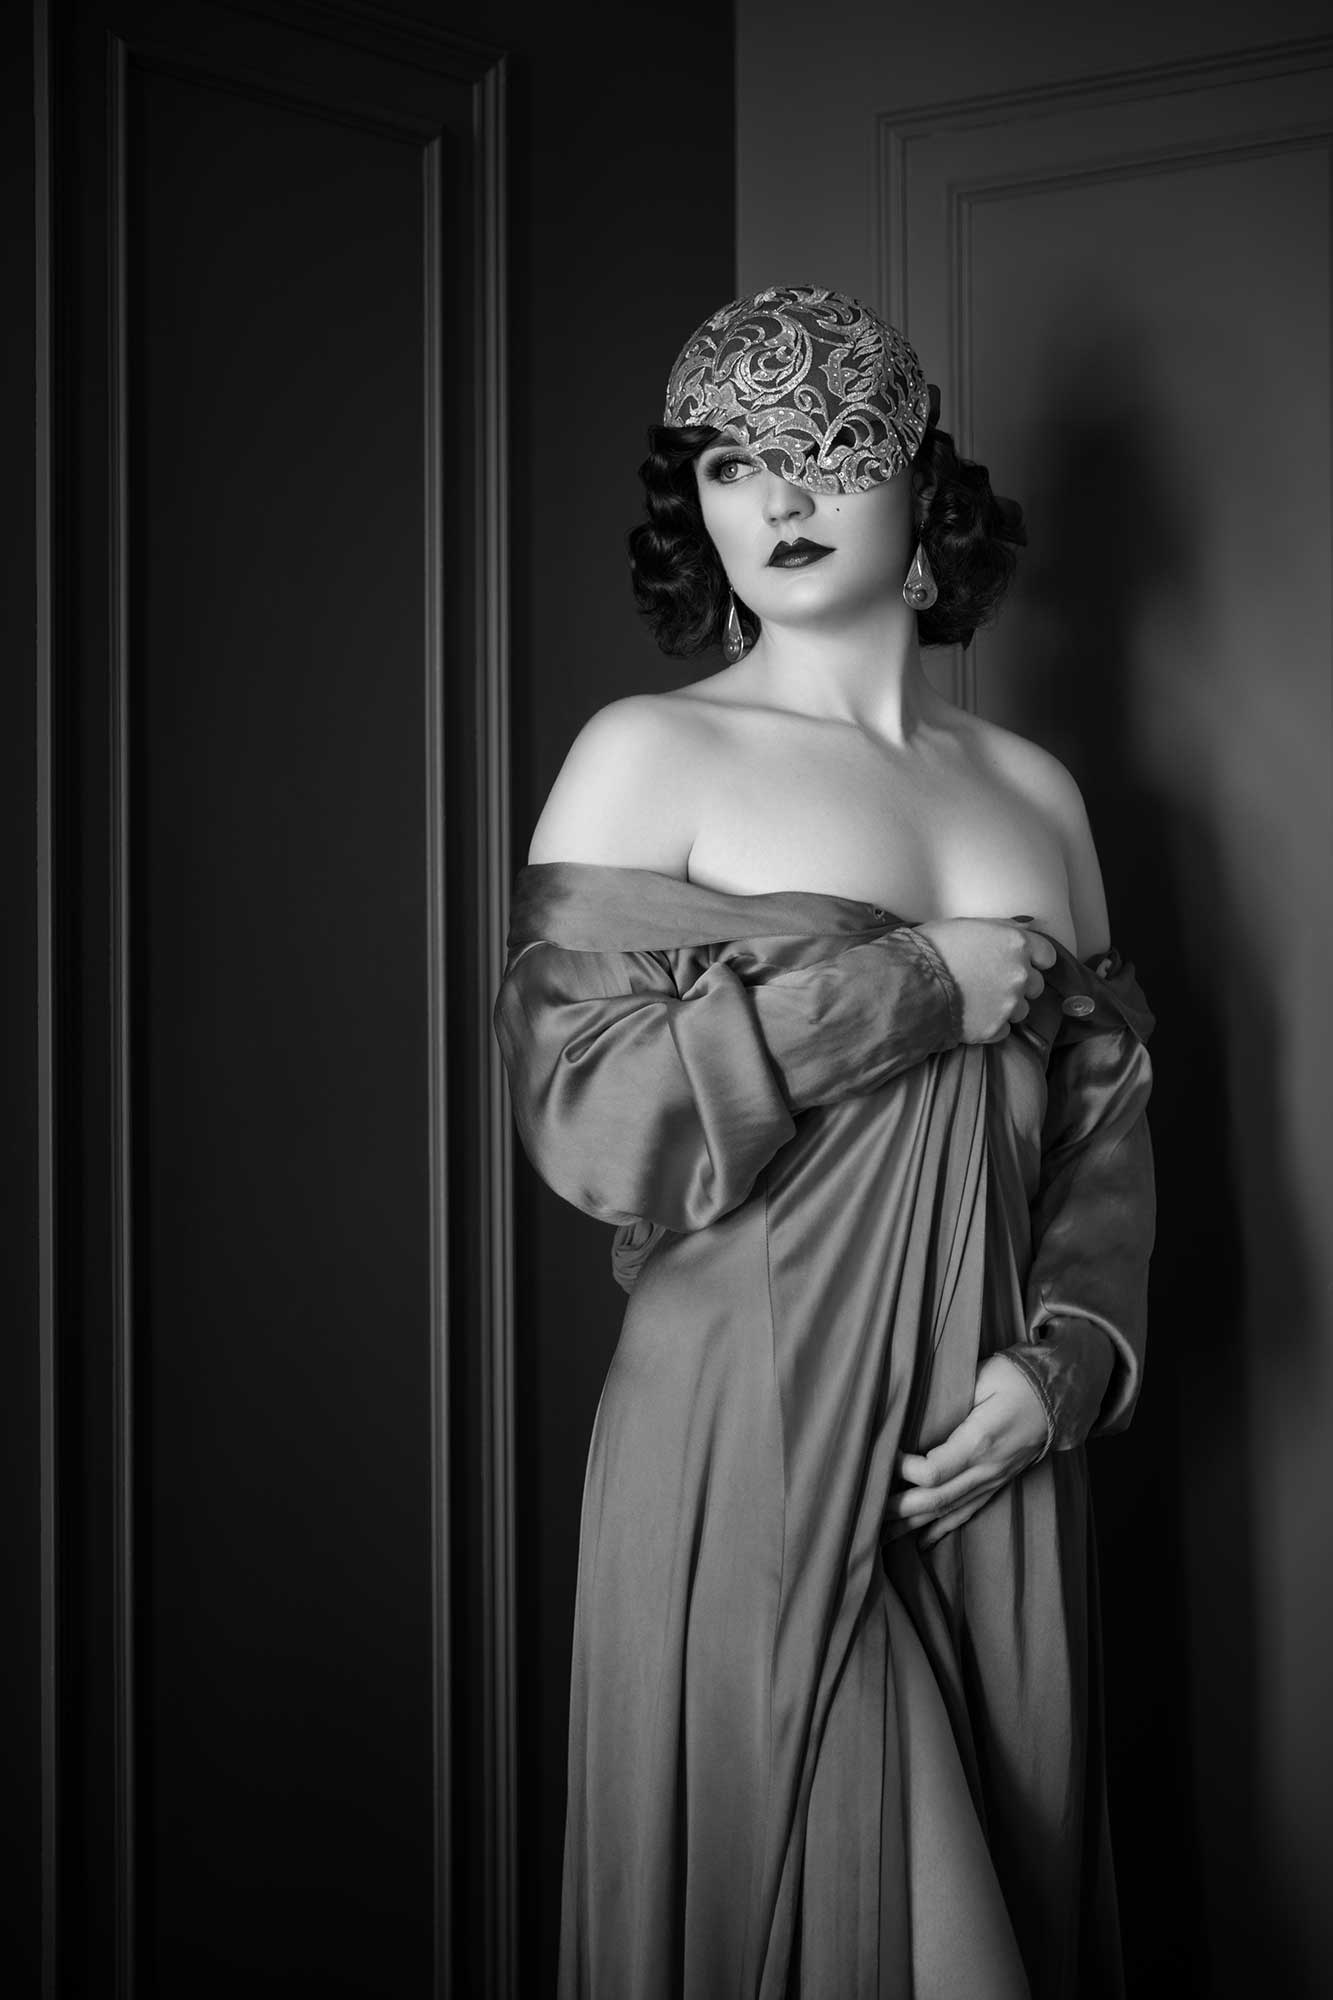 Contact lingerie and boudoir photography expert Tigz Rice